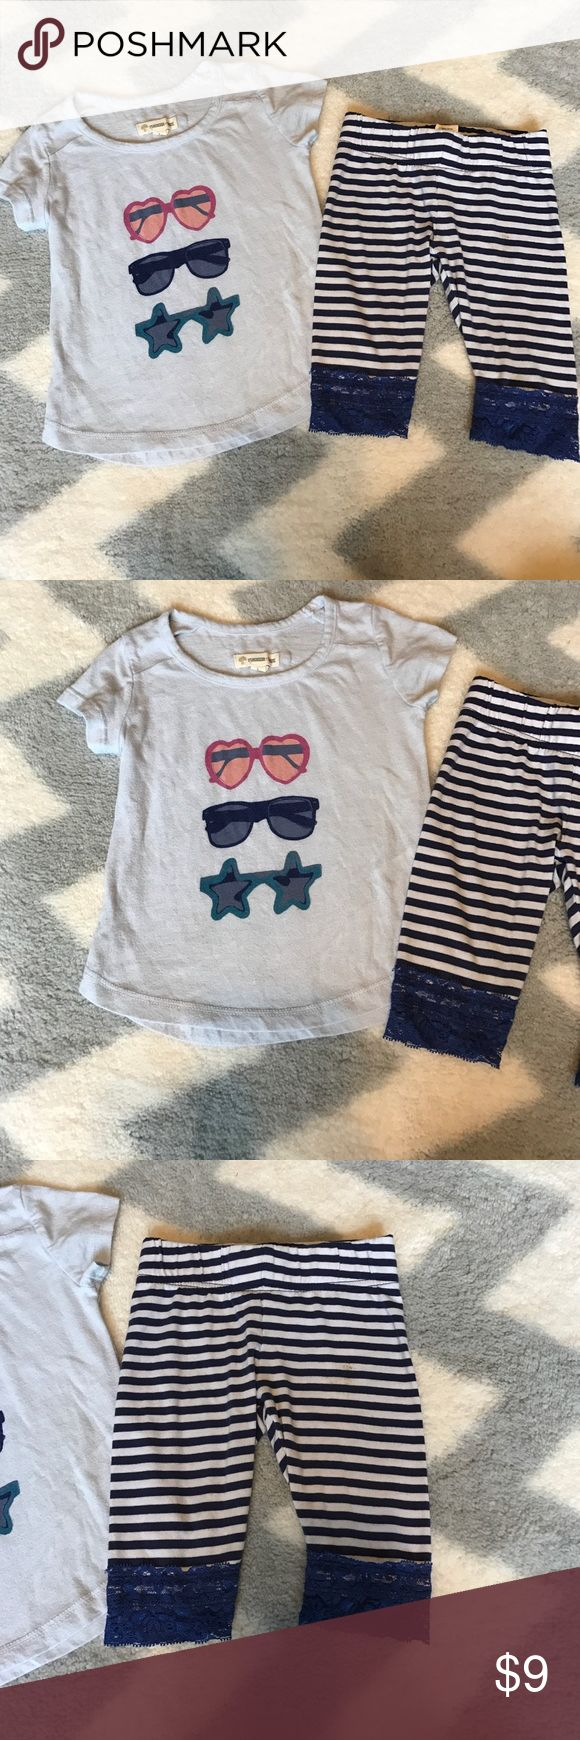 Tucker and Tate shirt and leggings Extra soft cotton shirt with sunglasses and blue and white leggings with lace. Both items are Tucker and Tate. The shirt is size 3T but fits a 2T and the leggings are size 2T. Both items in great condition but the leggings have a small stain as seen in picture. You can really only see it if your looking for it. I have lots of kids clothes check out my closet! Tucker + Tate Matching Sets